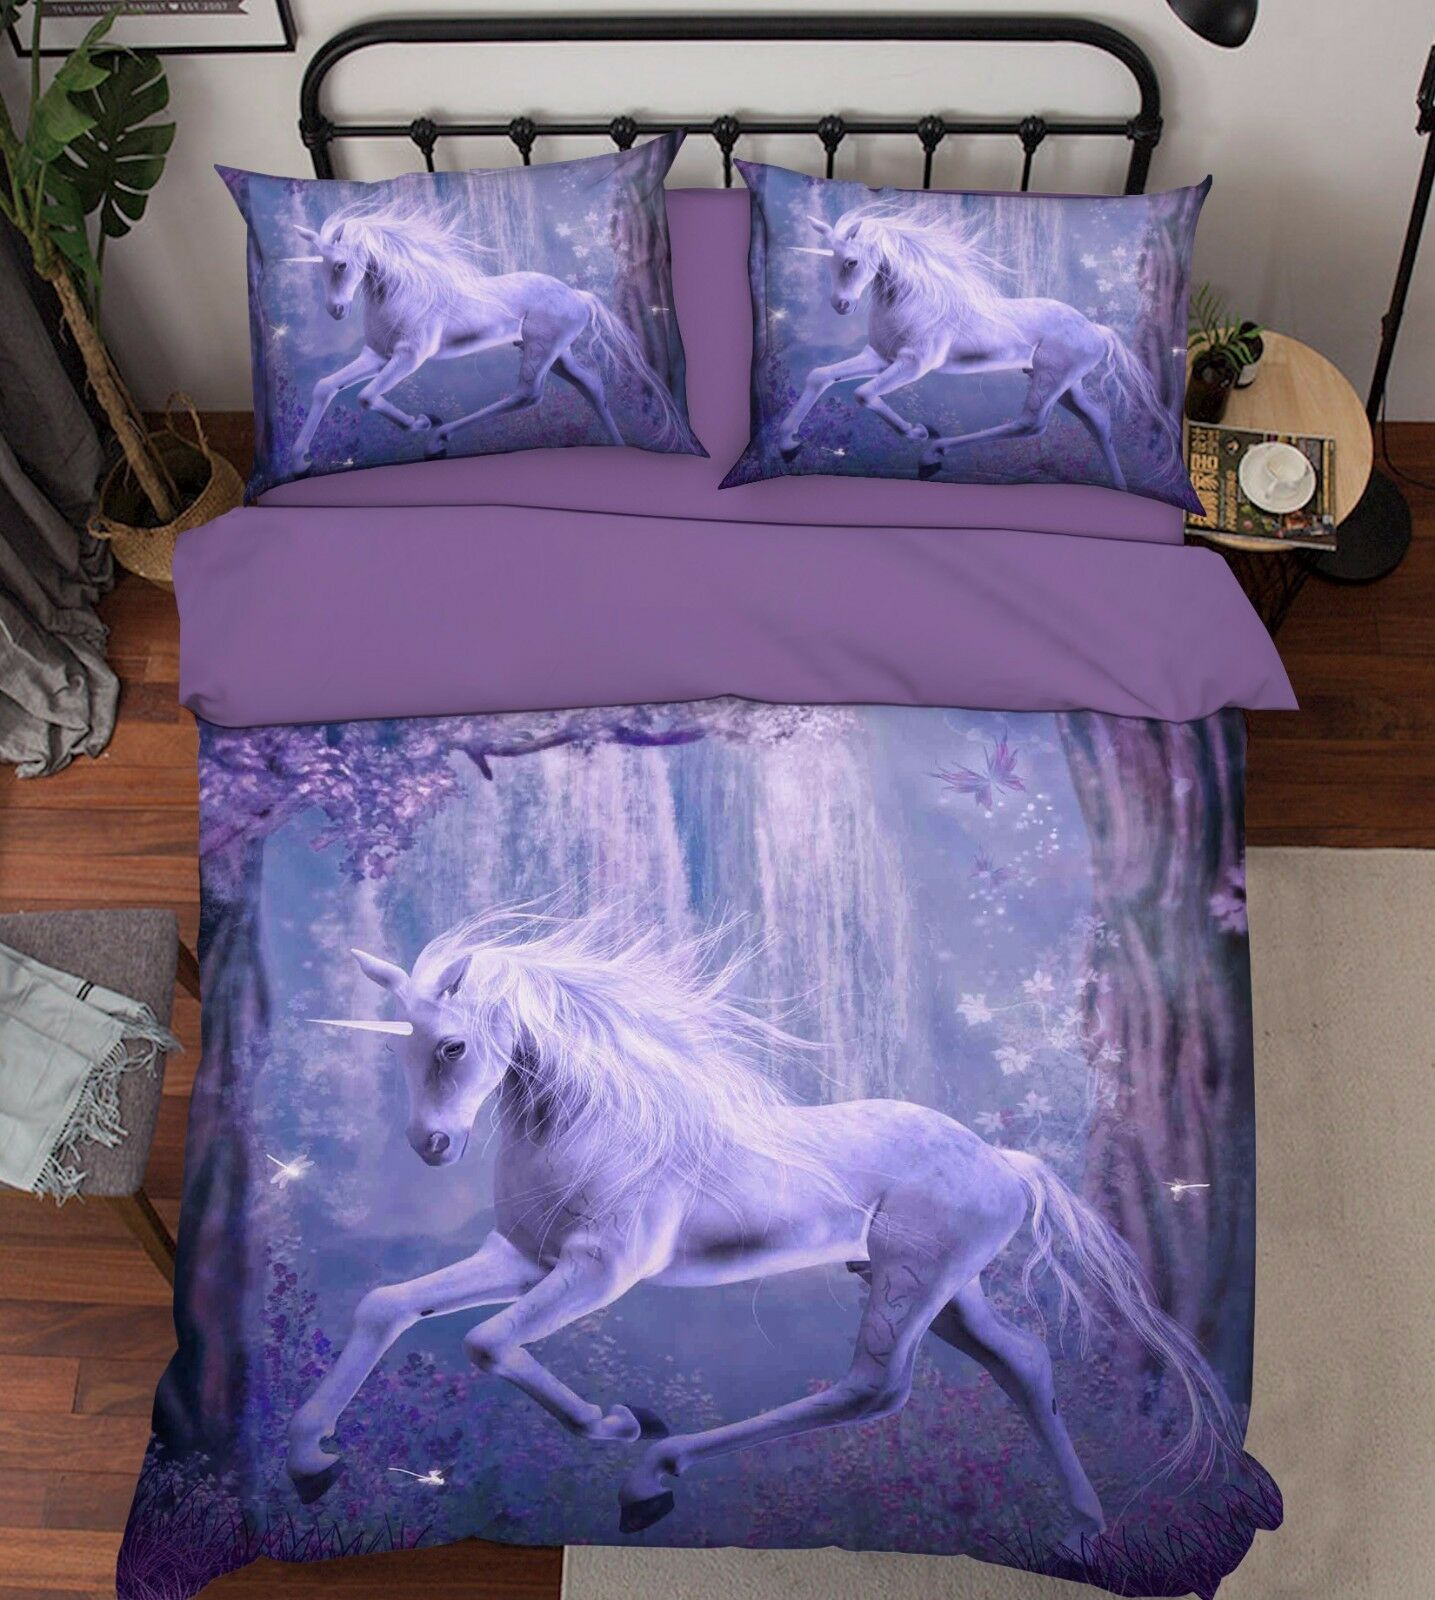 3D Unicorn Forest 521 Bed Pillowcases Quilt Duvet Cover Set Single Queen CA